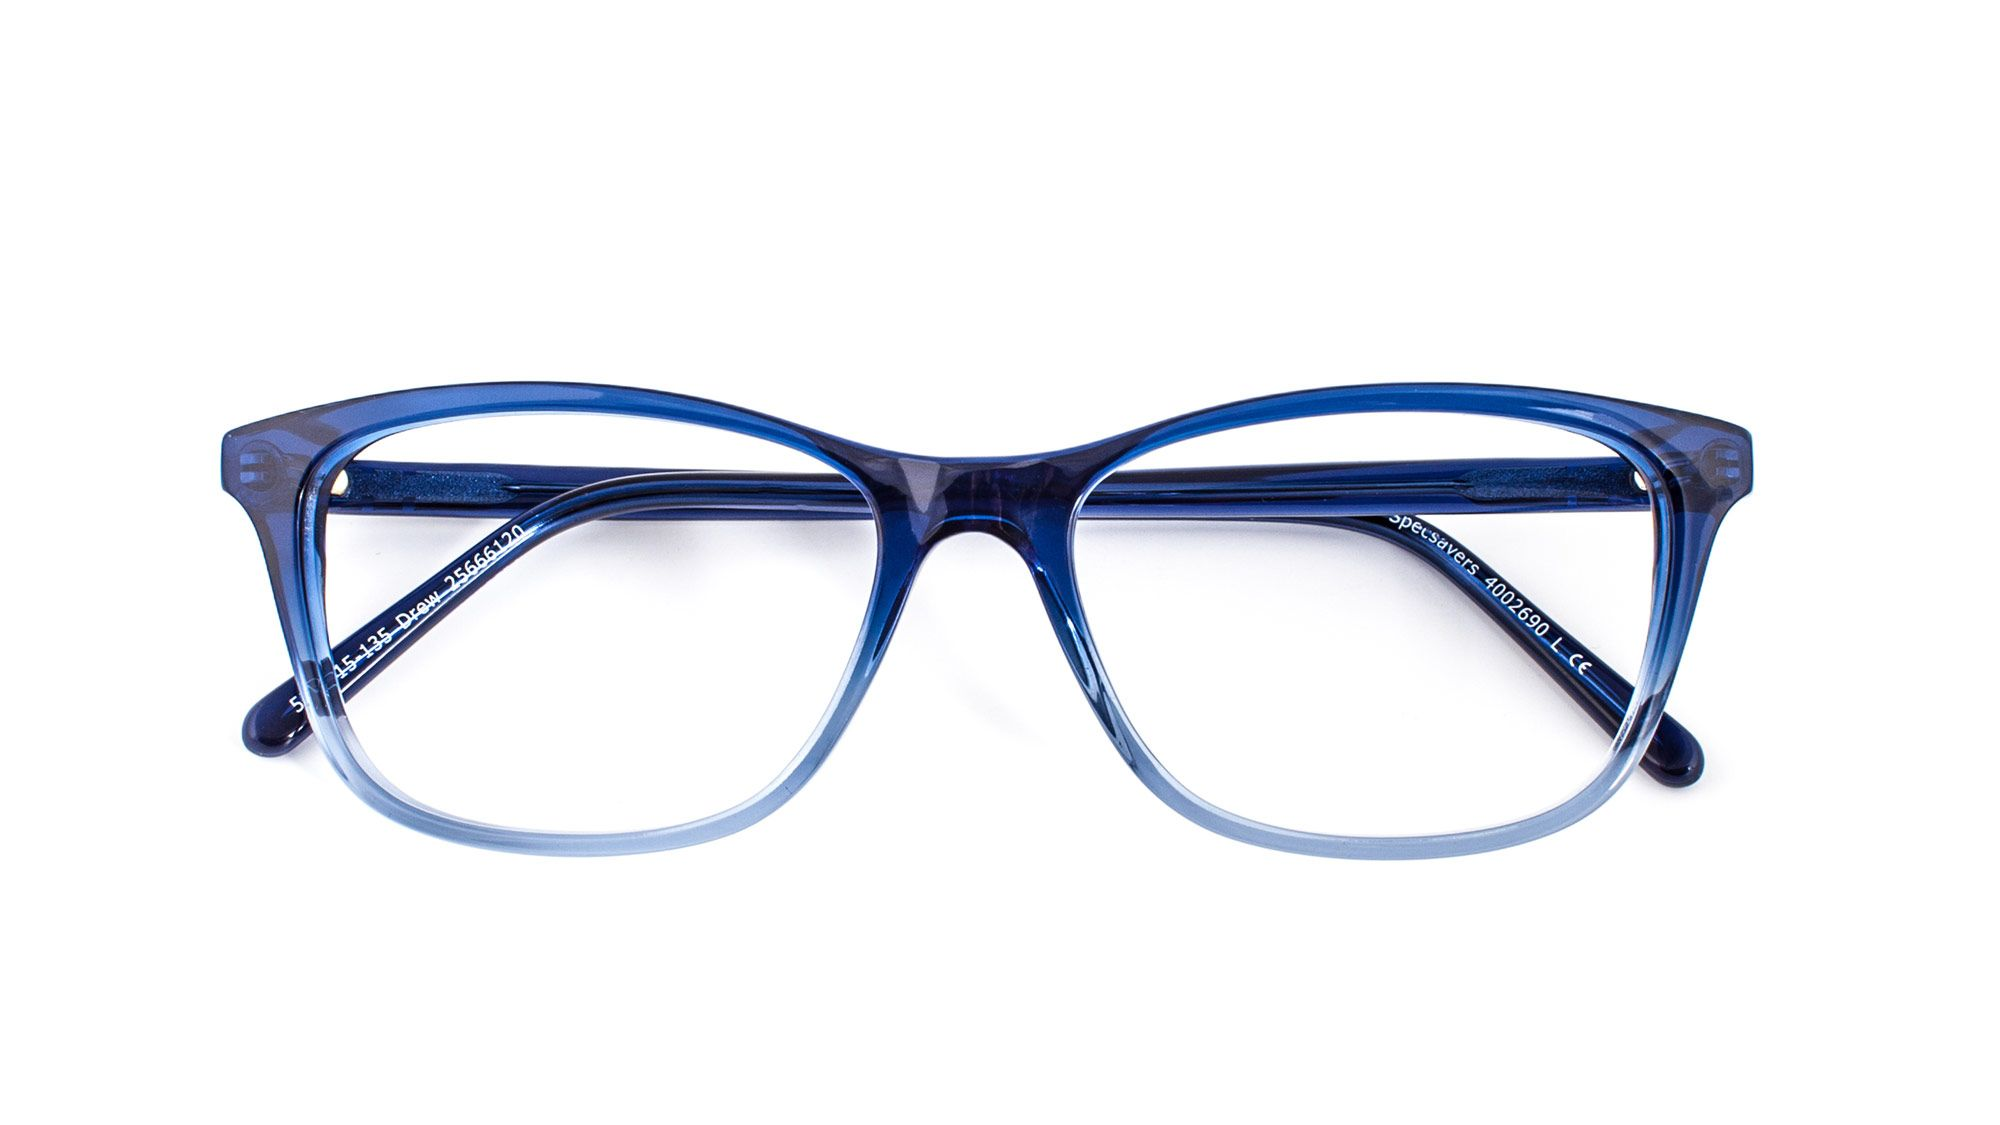 Broken Glasses Frame Specsavers : Specsavers Optometrists - Designer Glasses, Sunglasses ...